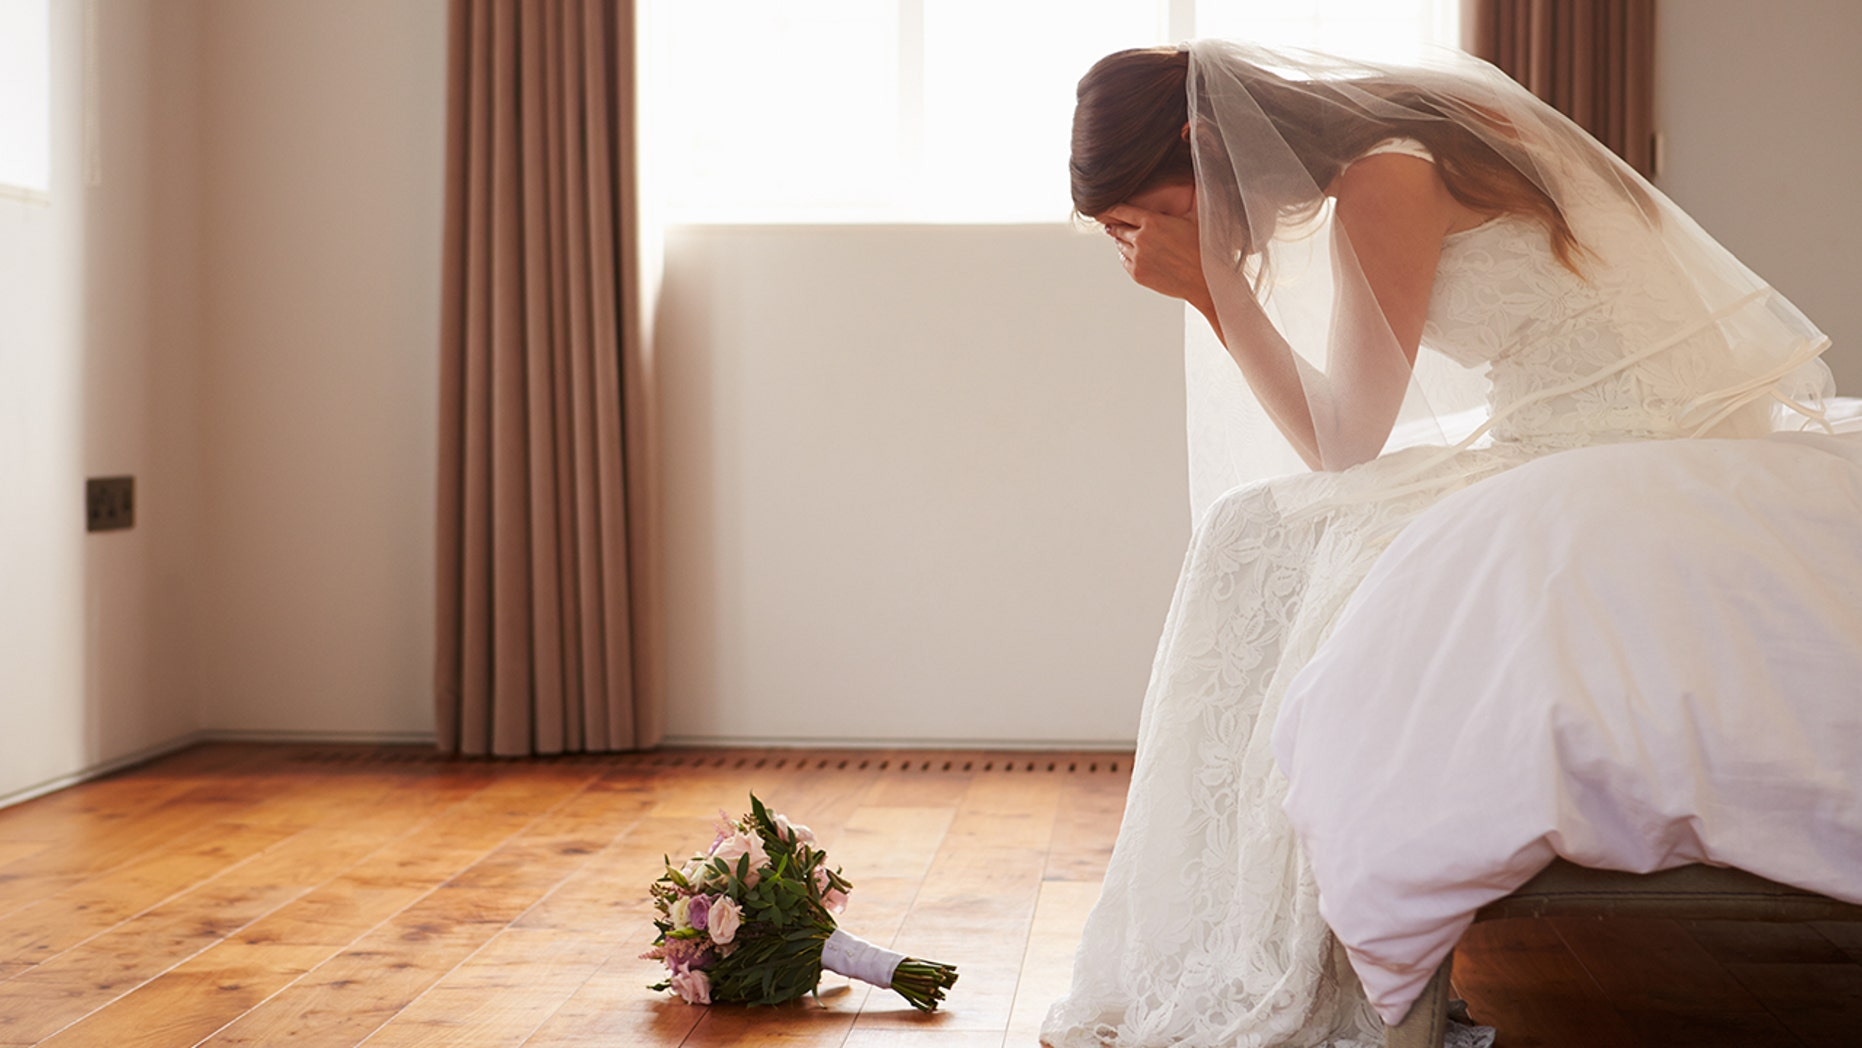 A wedding planner and a bride got into a Facebook argument over a bad review.